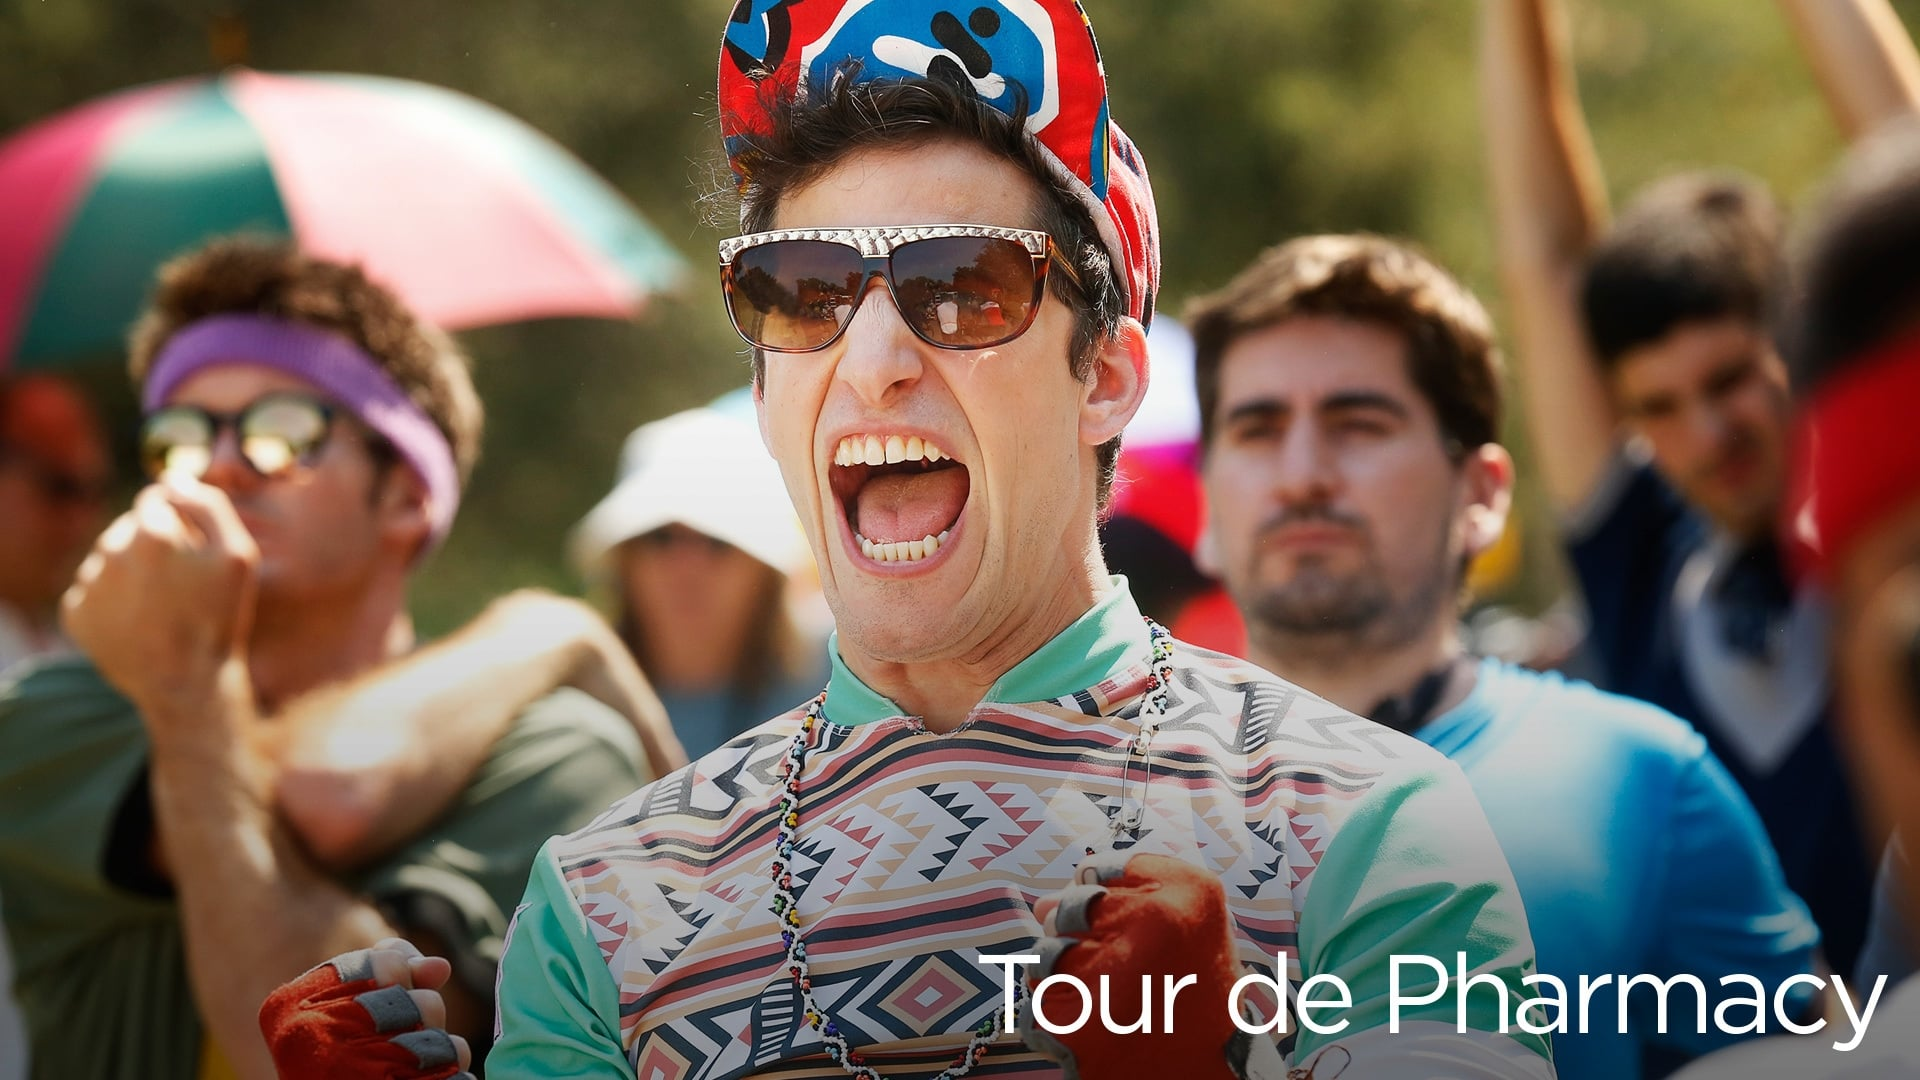 Tour De Pharmacy Full Movie